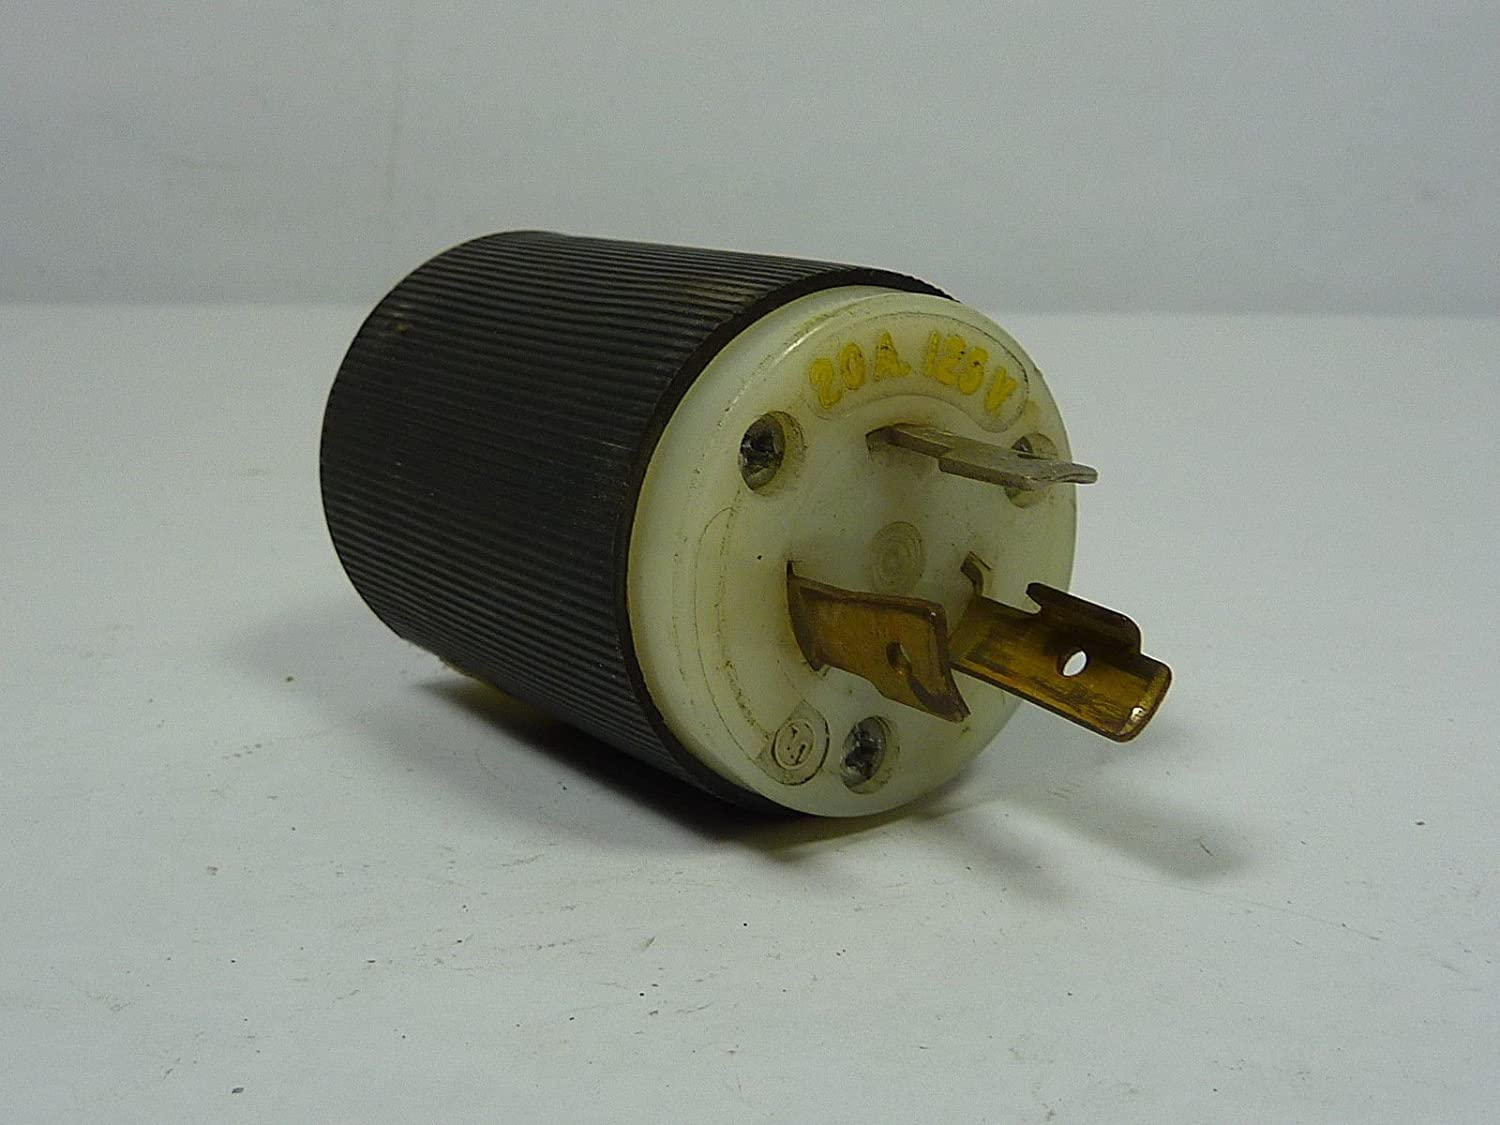 Hubbell Hbl2311 Locking Plug 20 Amp 125v L5 20p Black And White 3 Way Switch Wiring Electric Plugs Industrial Scientific